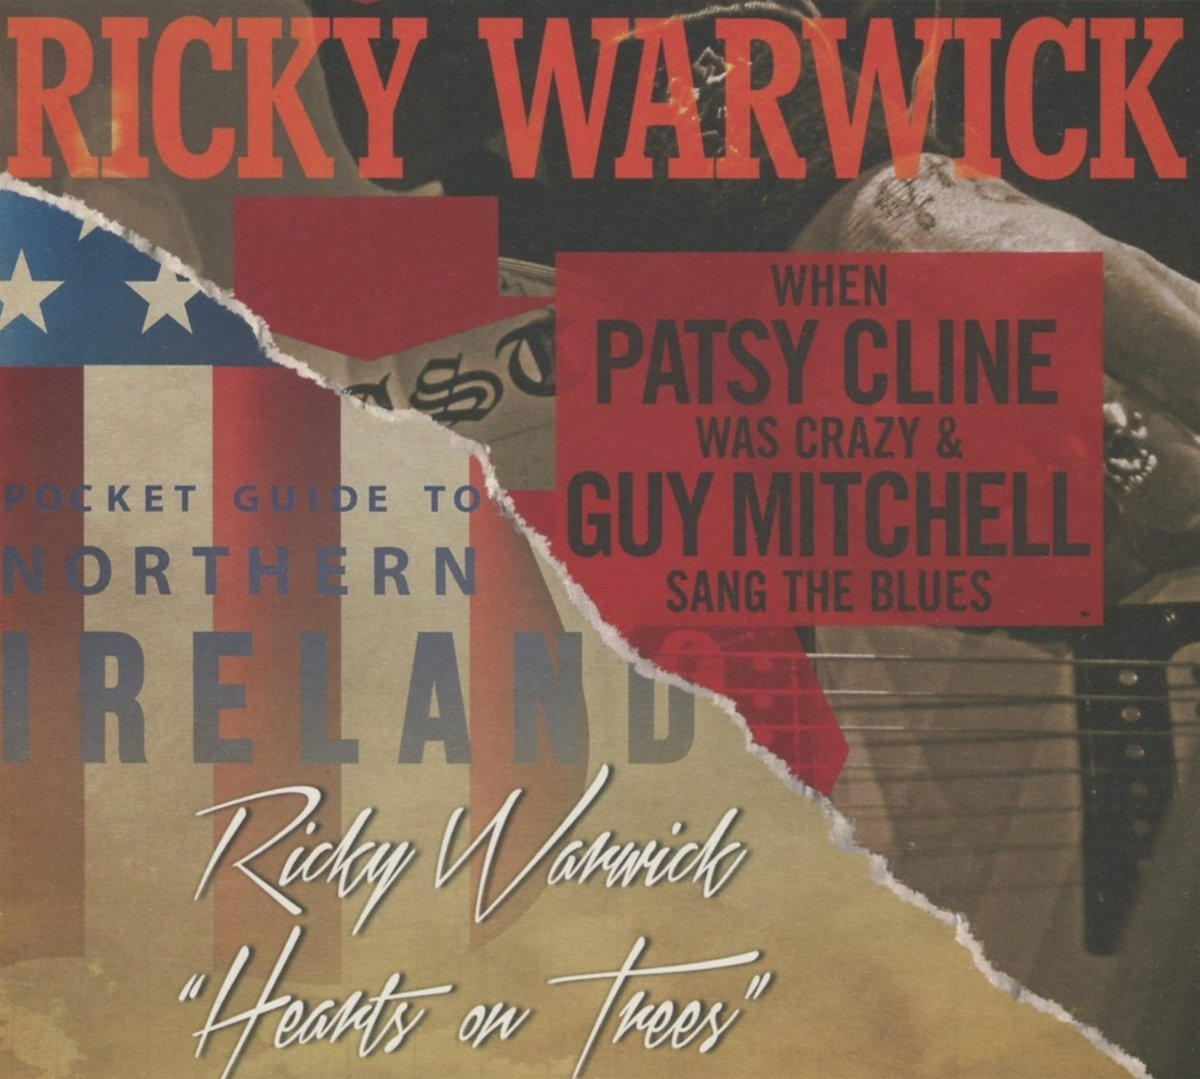 Ricky Warwick: When Patsy Cline Was Crazy (And Guy Mitchell Sang The Blues) (2016) Book Cover